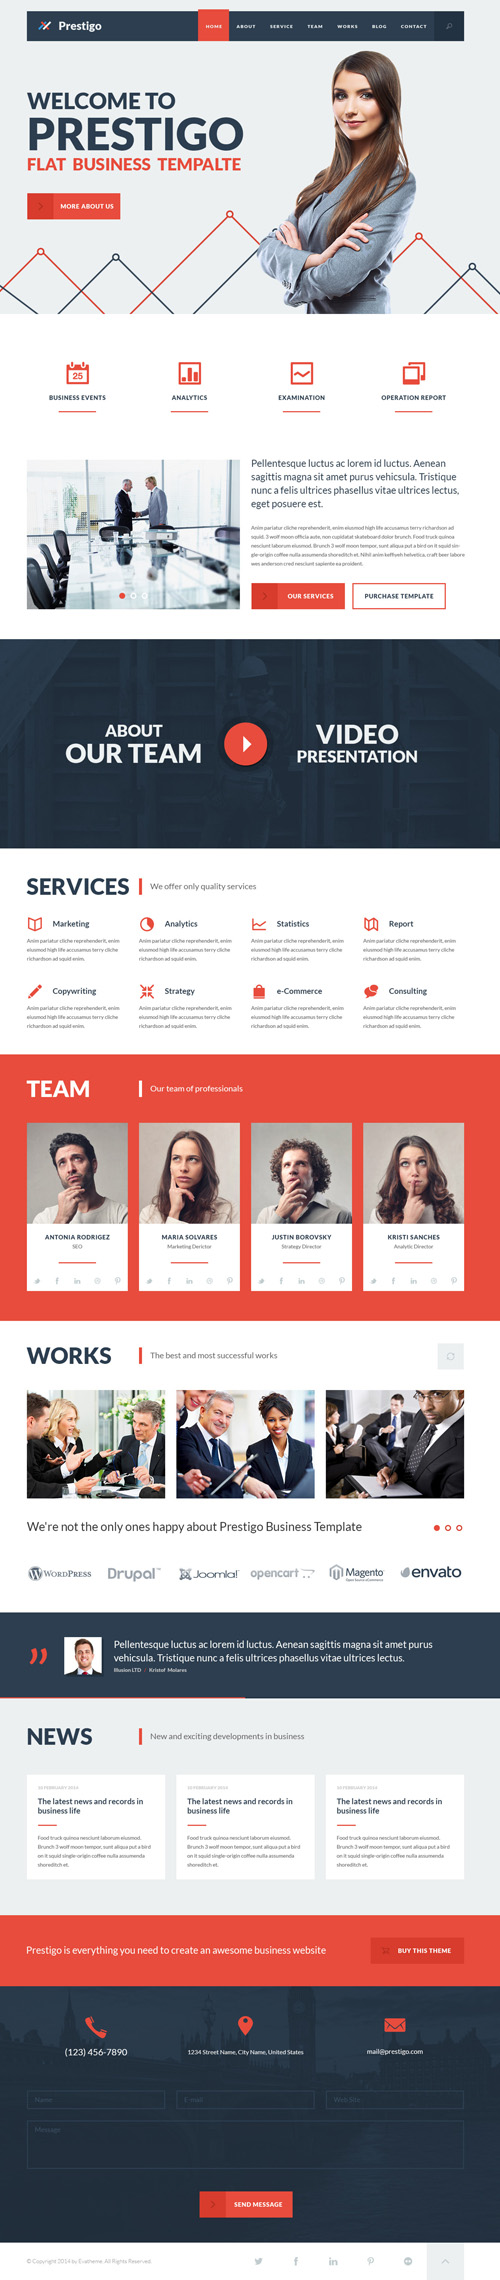 Prestigo - Flat Business Template